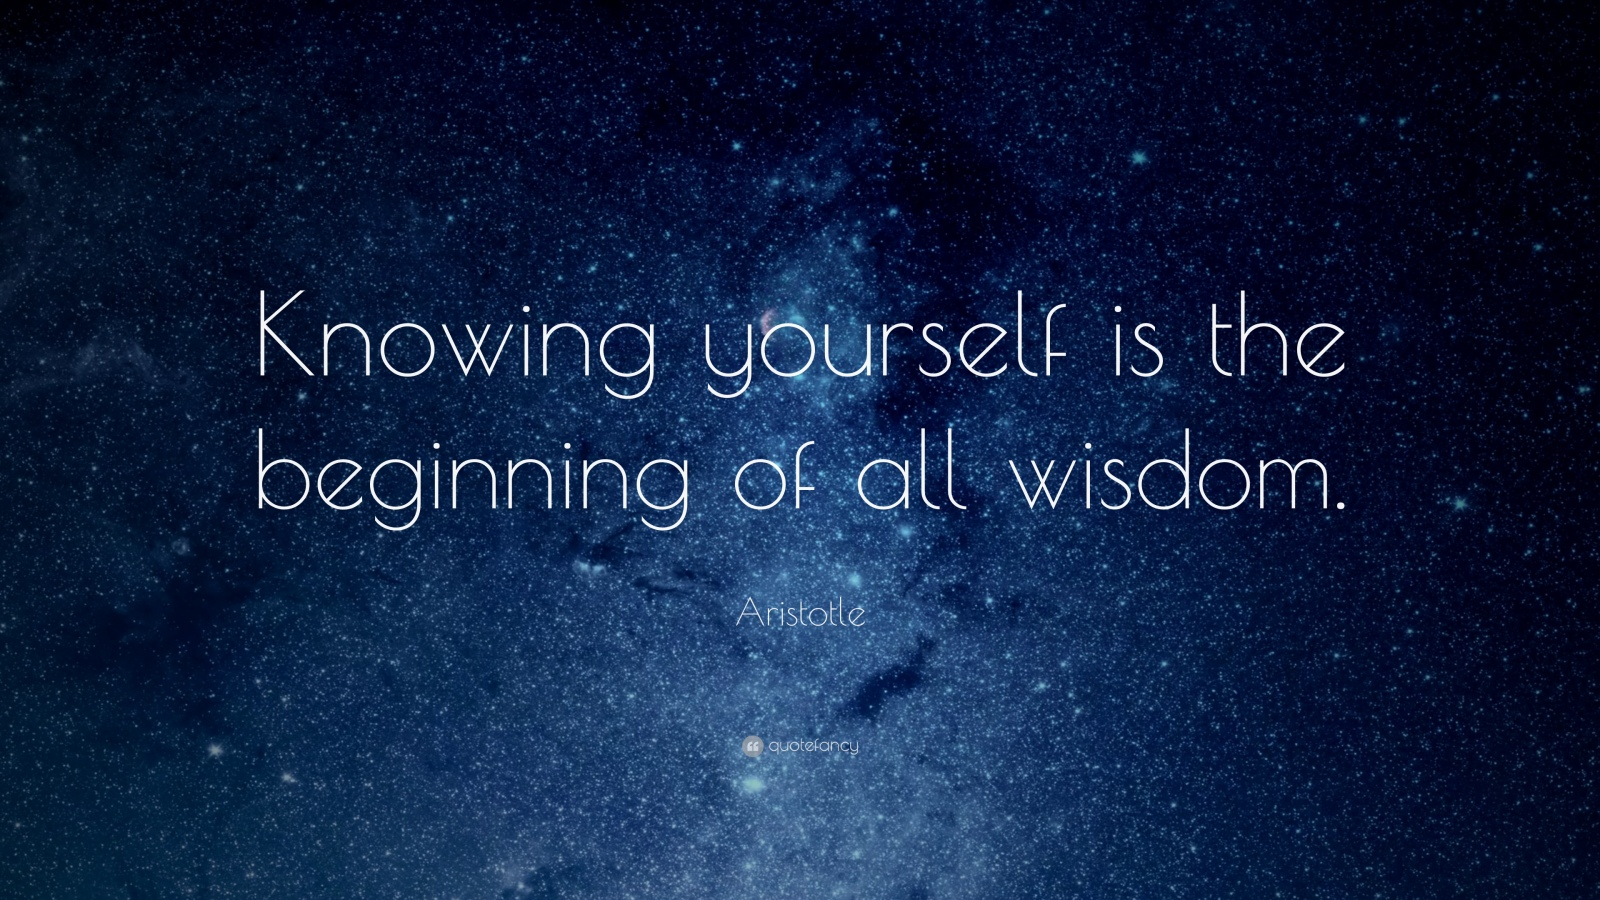 Aristotle Quote About Wisdom: Quotes About Beginning Of Wisdom (99 Quotes